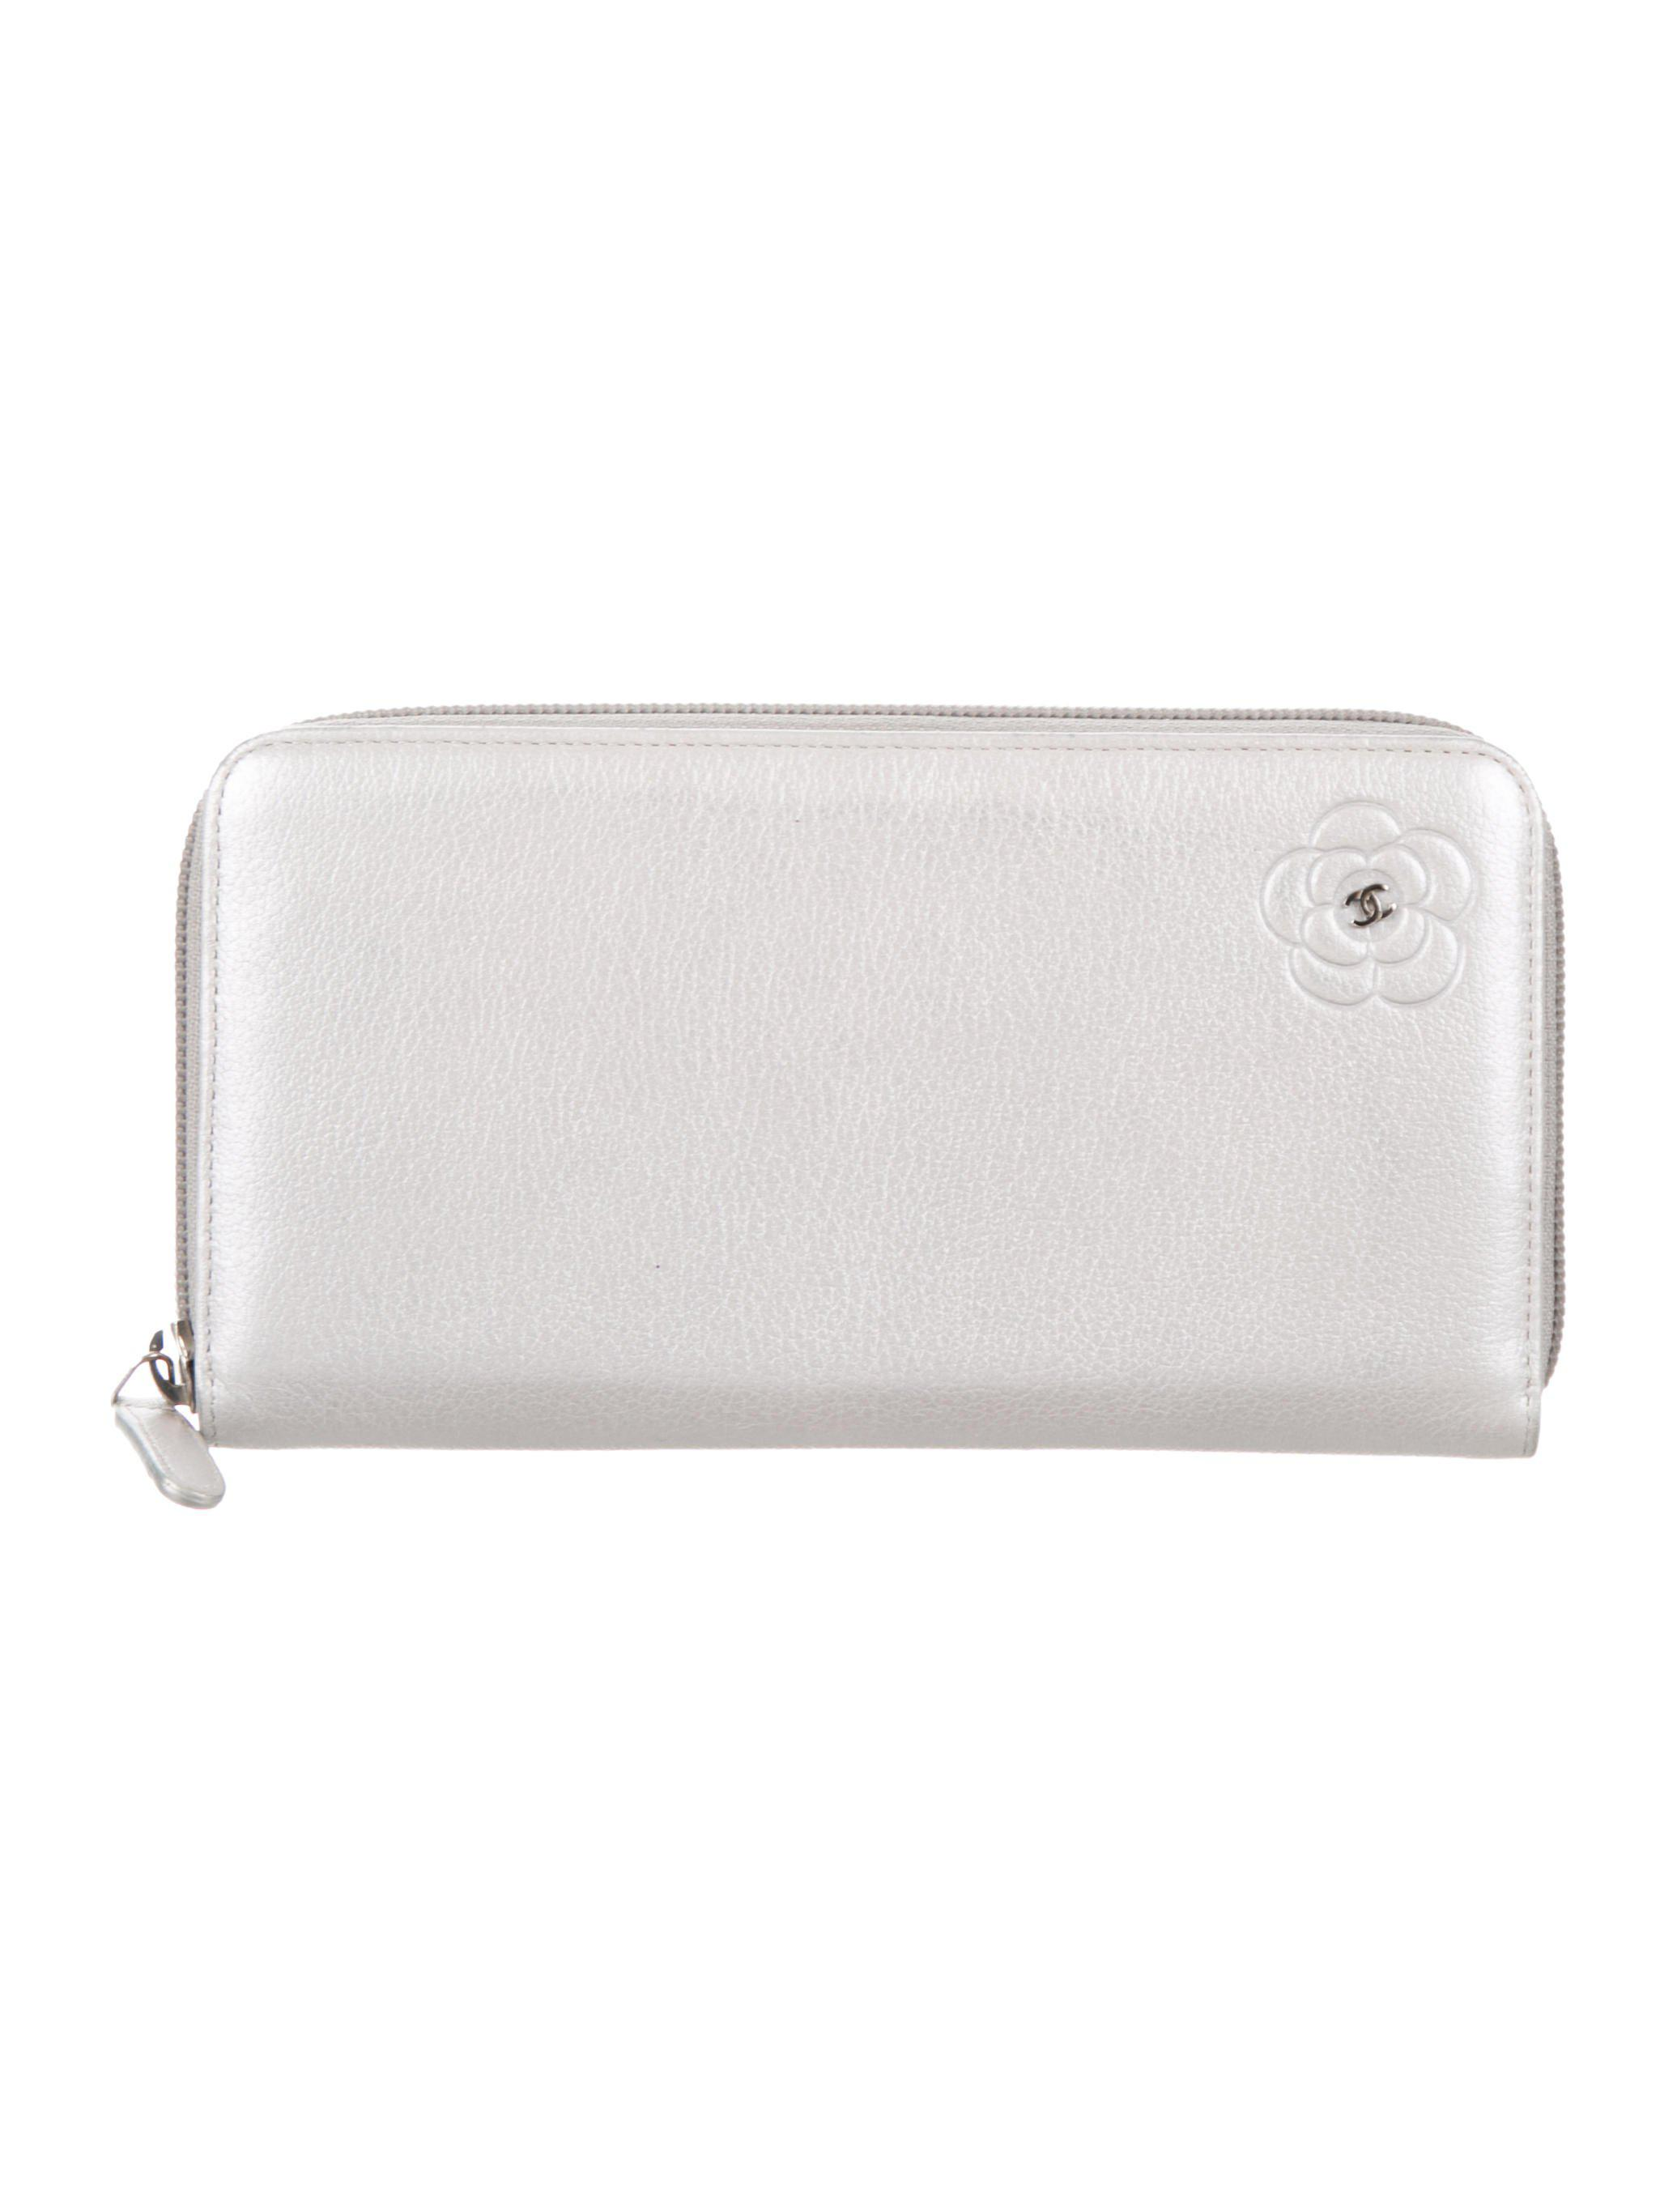 33c49a3acdf1 Lyst - Chanel Camellia Zip Wallet Silver in Metallic